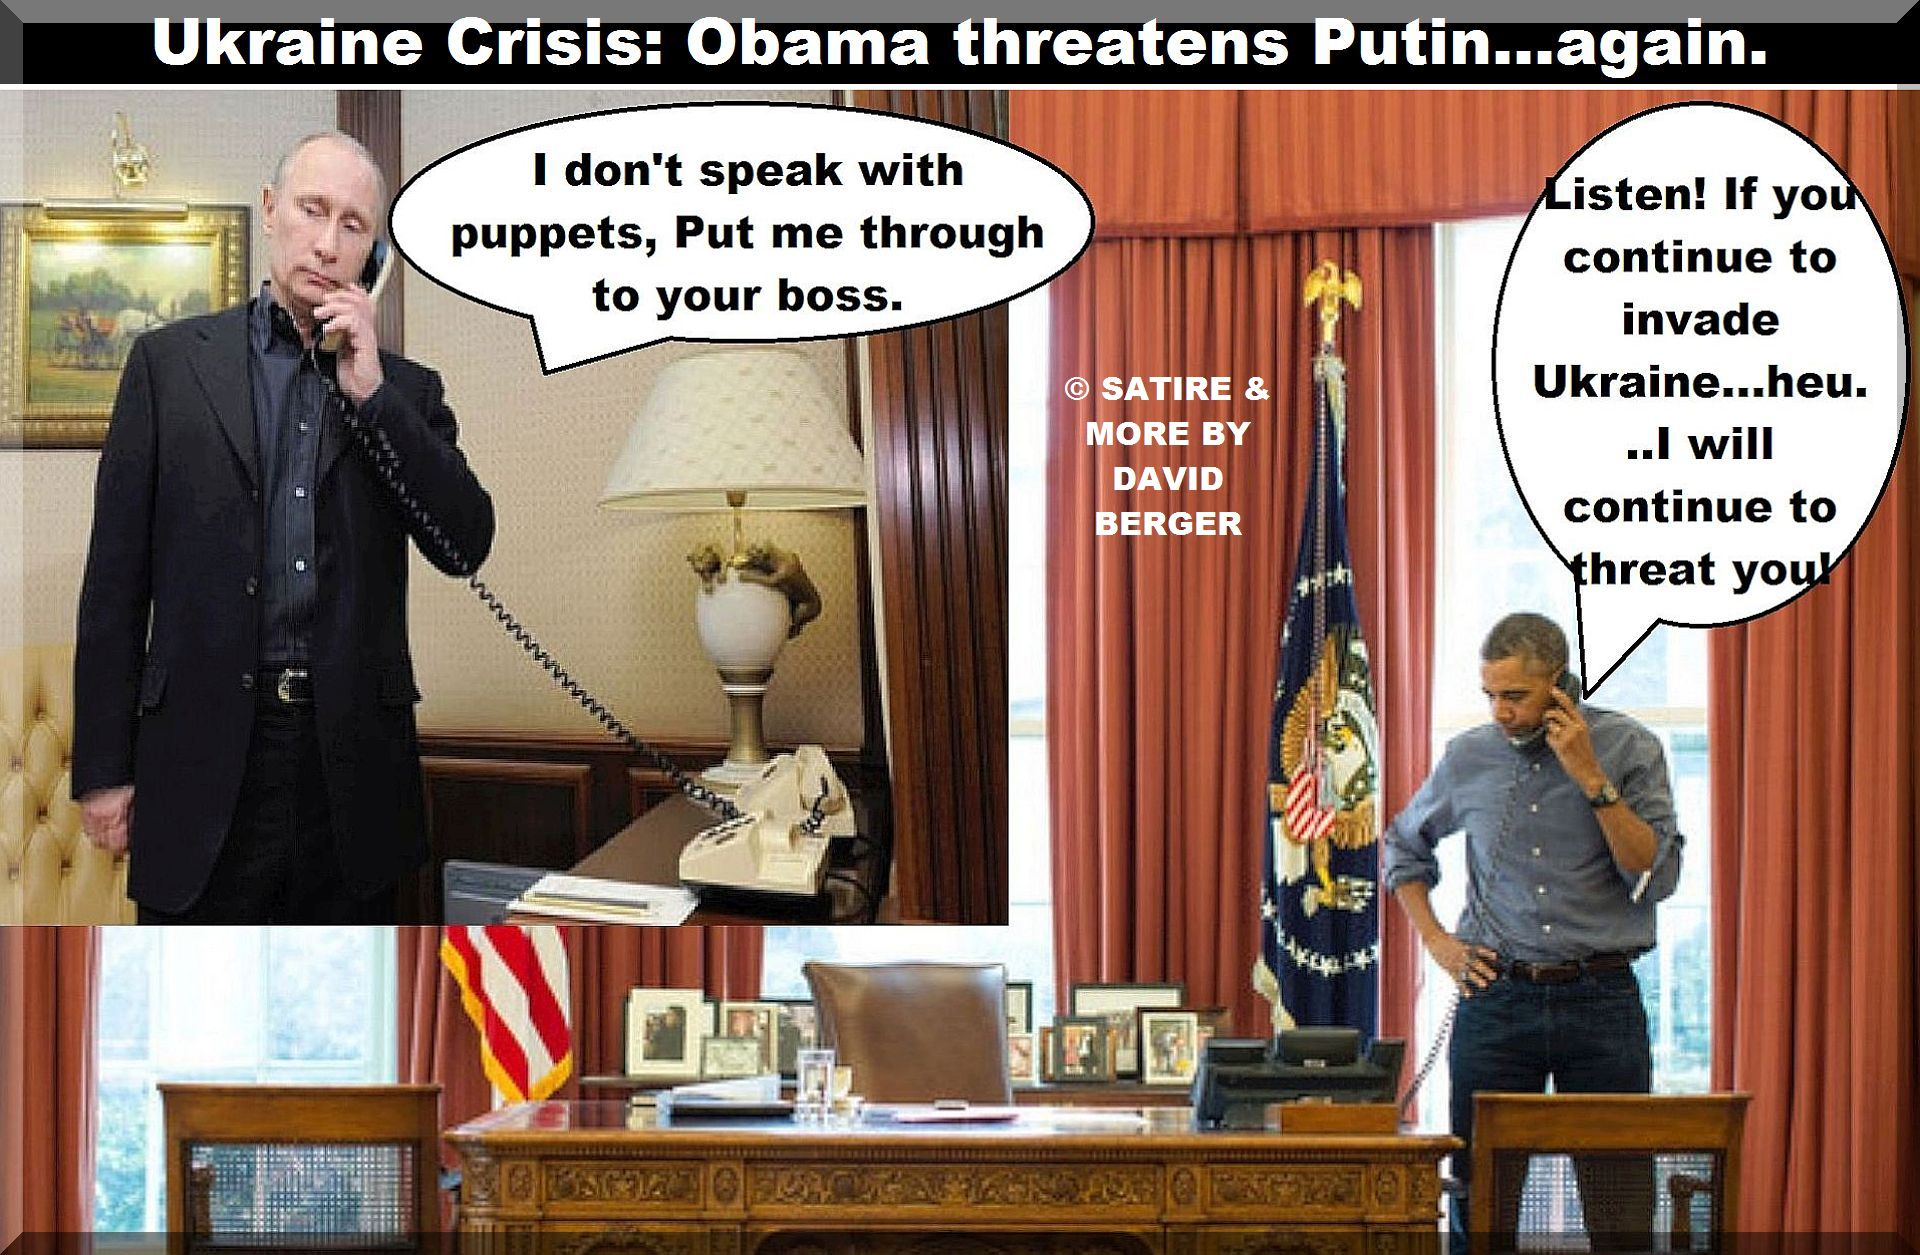 ukraine crisis obama threatens putin aga